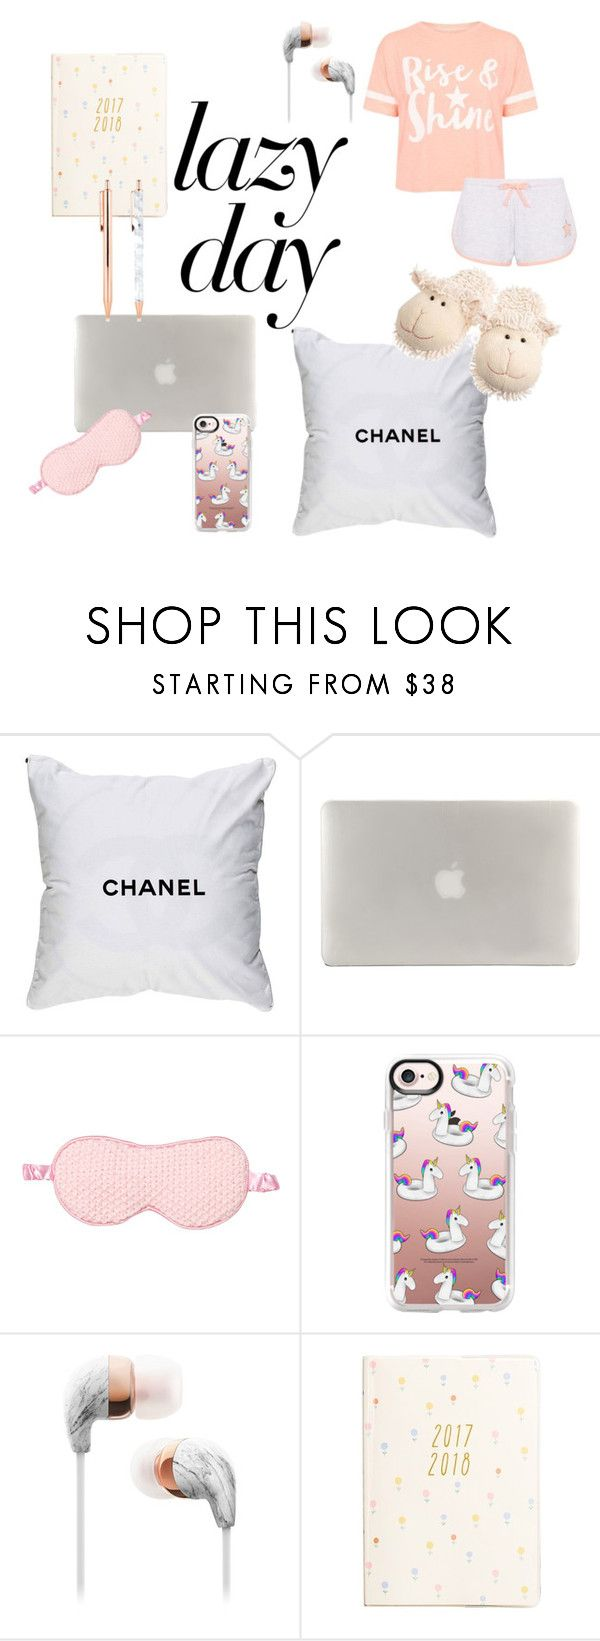 """Lazy day"" by elisa-togneri ❤ liked on Polyvore featuring Chanel, Pijama, Debenhams, Tucano, Casetify and kikki.K"